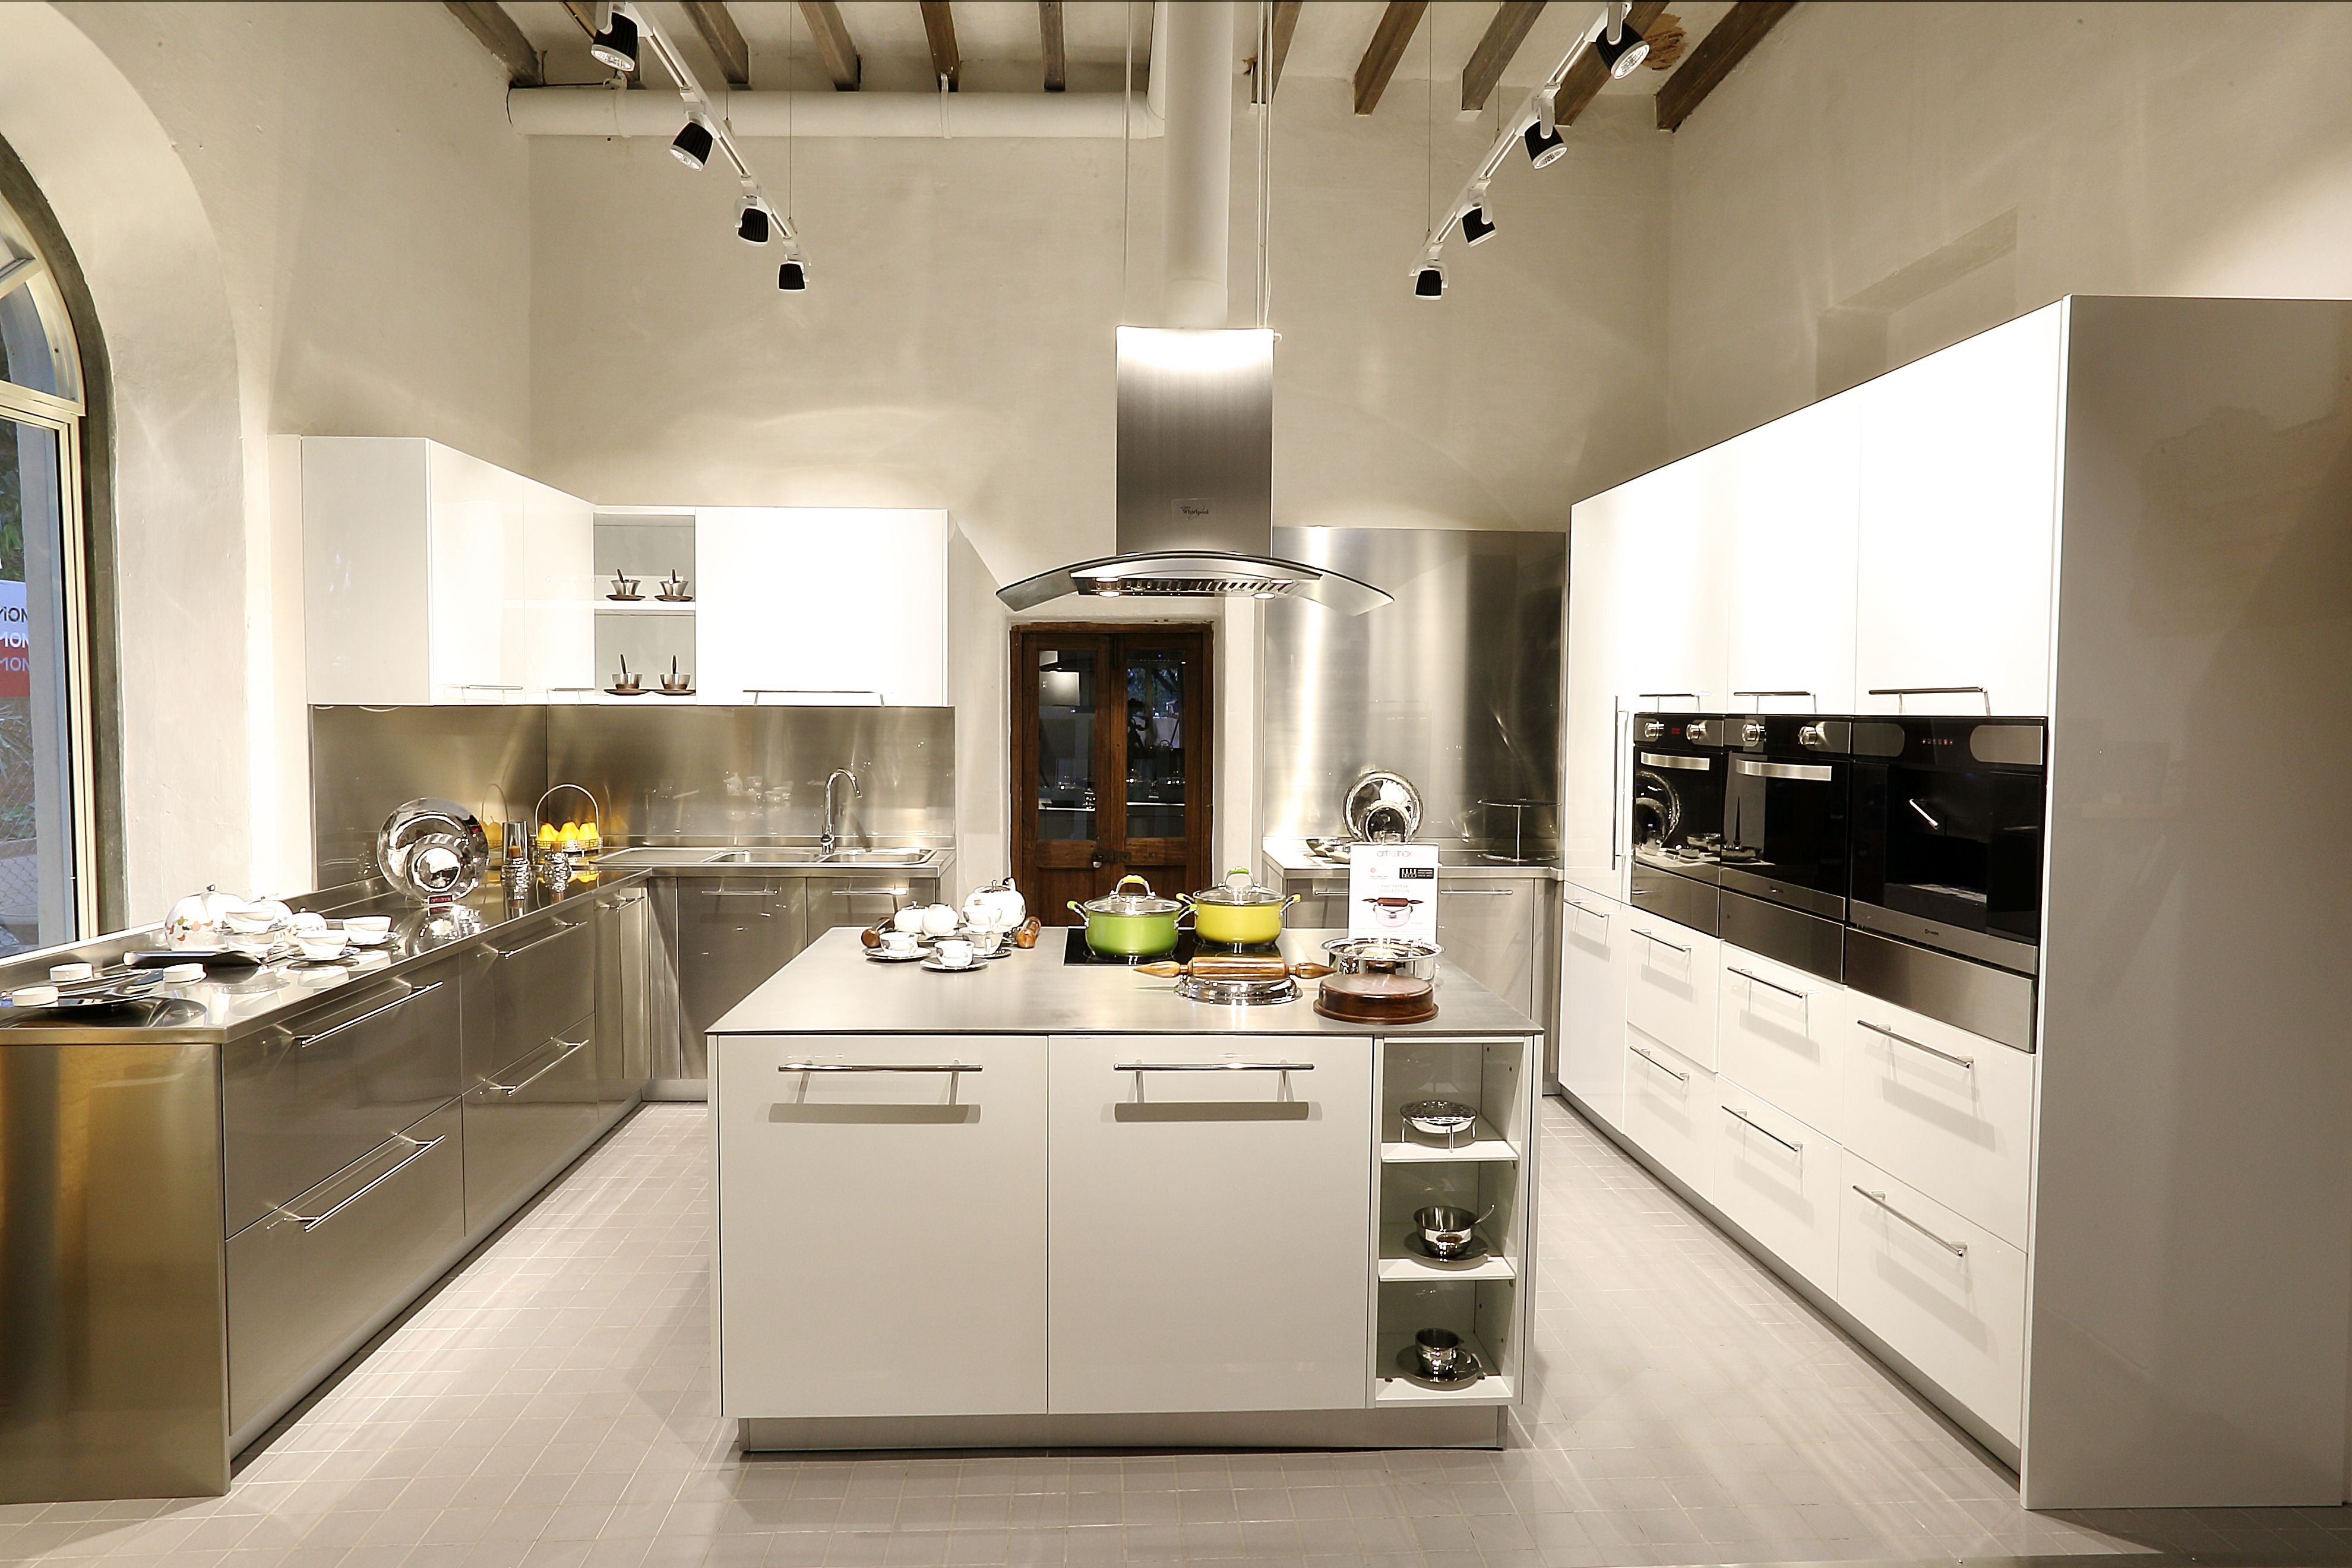 U Shaped Modular Kitchen Designs Provide An Unique Style, Elegance, And  Versatility To The Kitchen. This Modular Kitchen Category Is So Special  That It Can ...